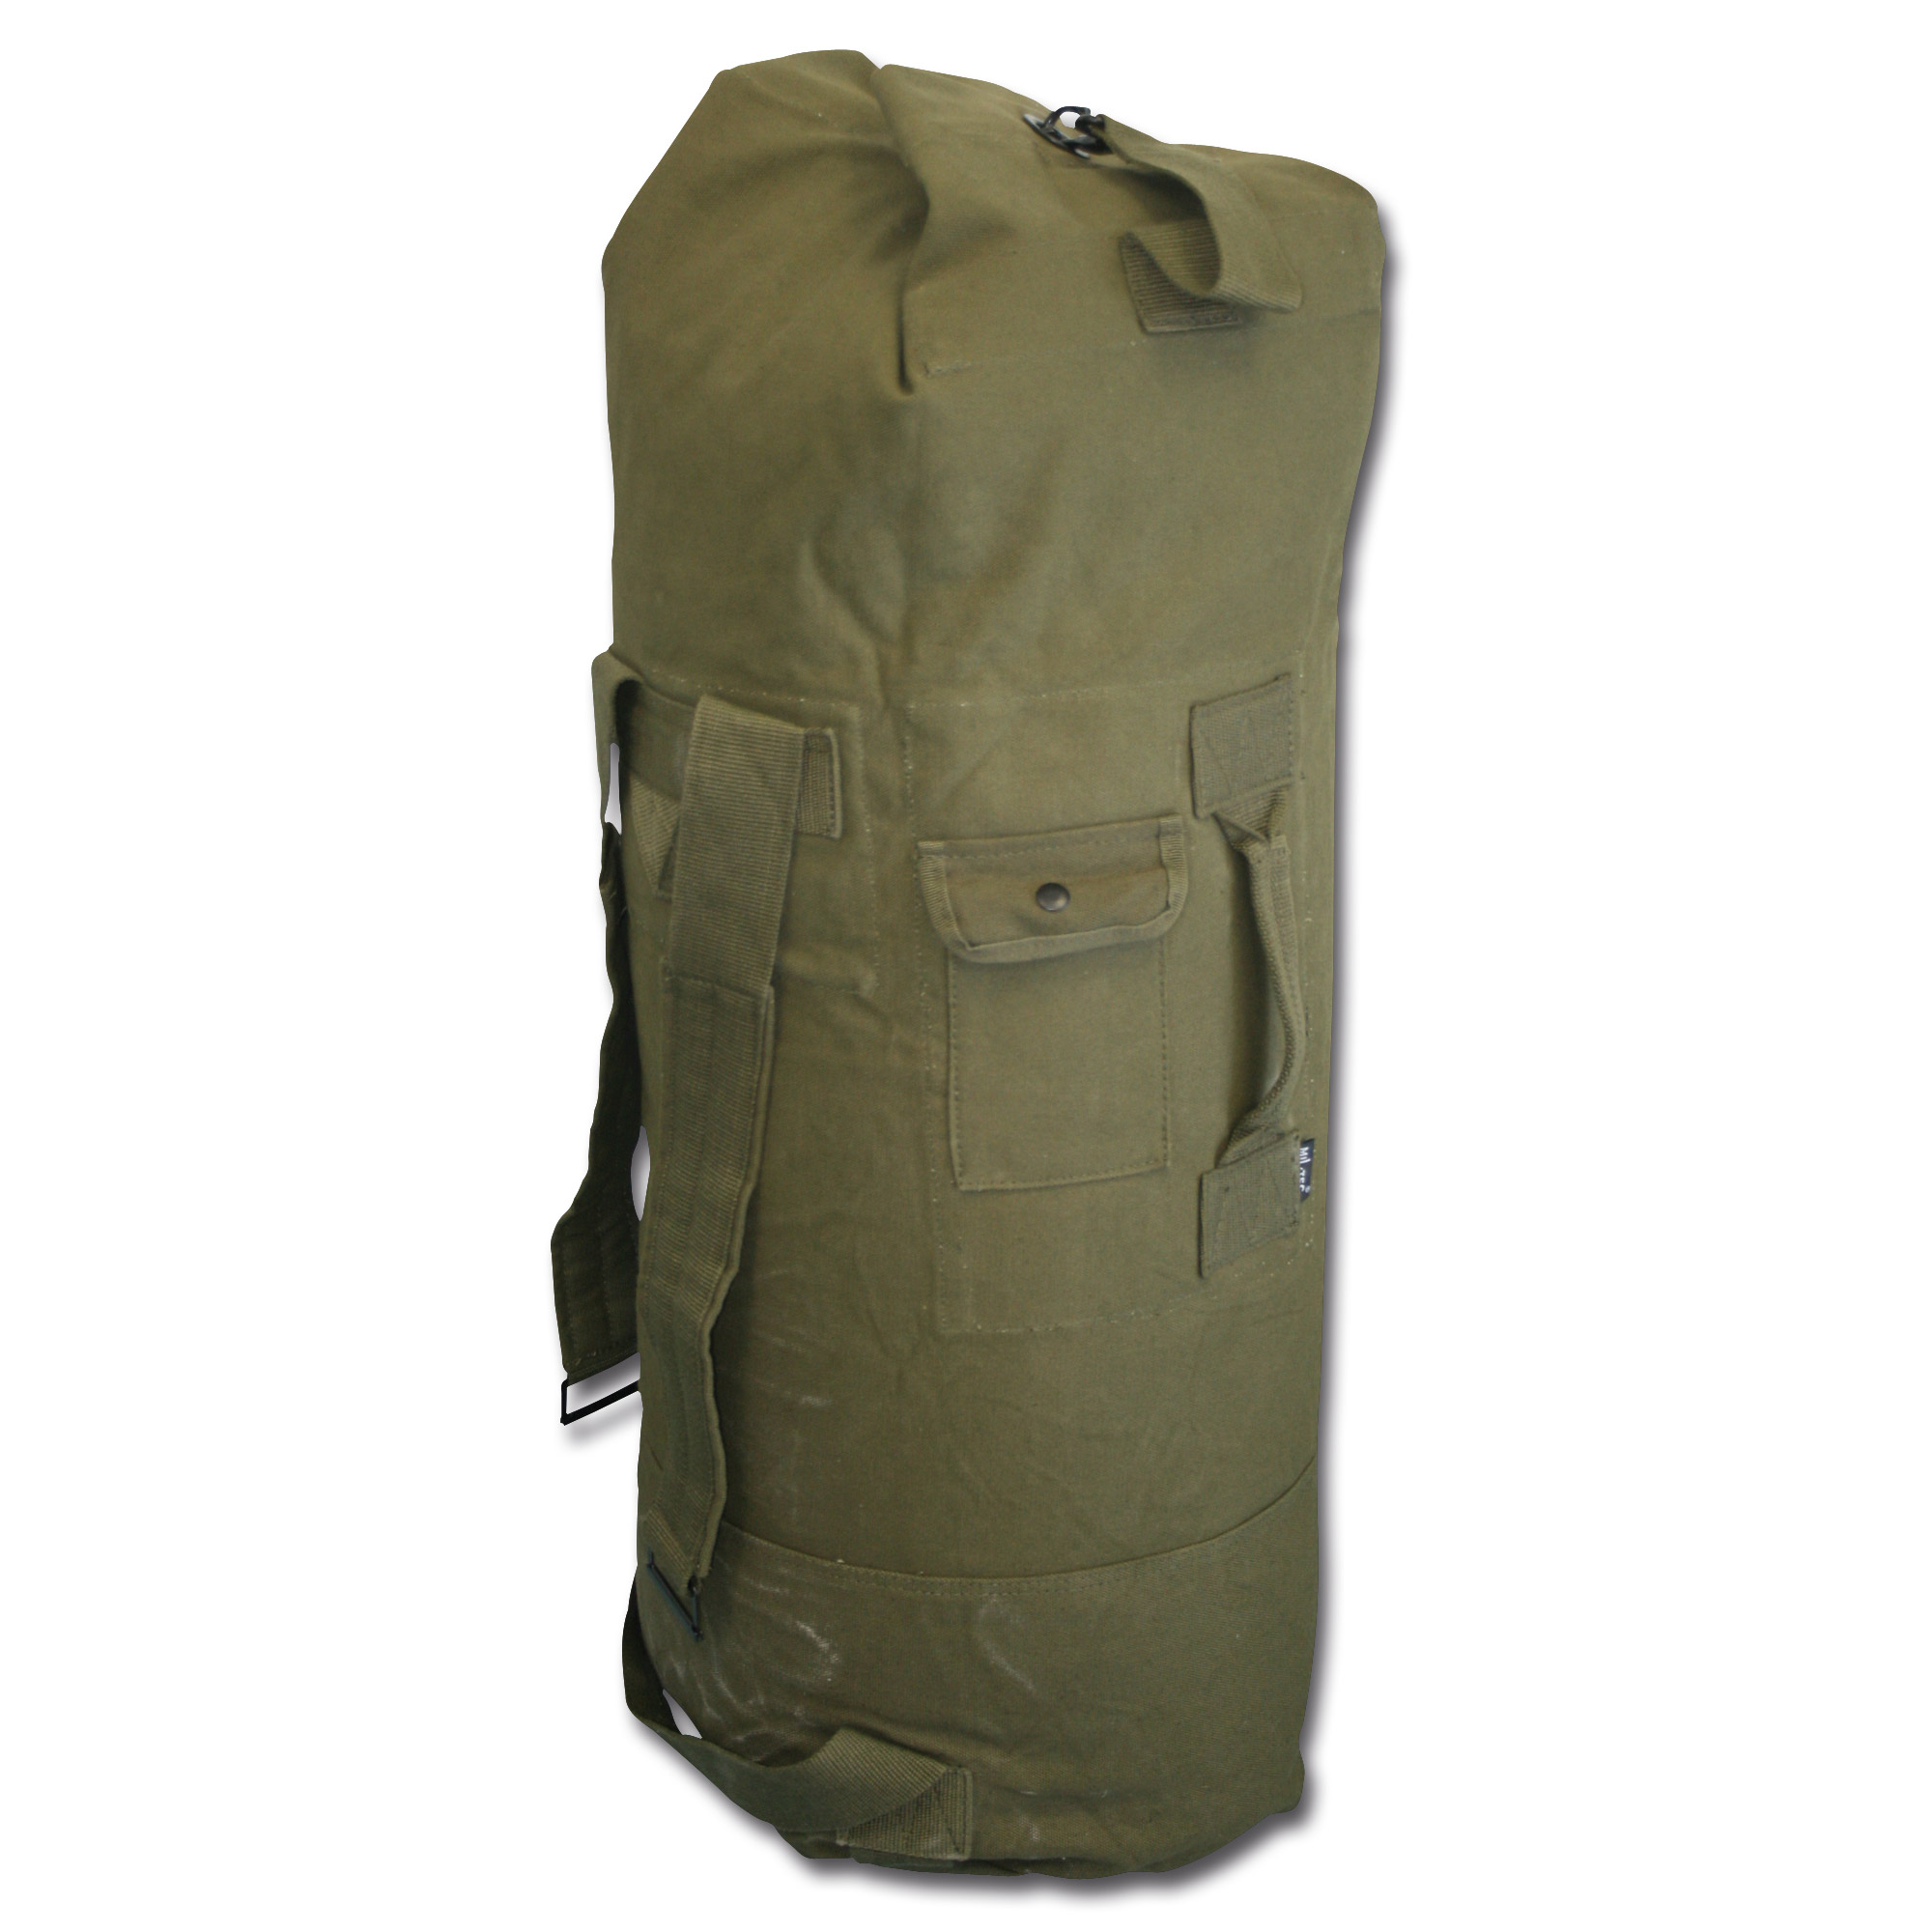 U.S. Duffle Bag Canvas olive green